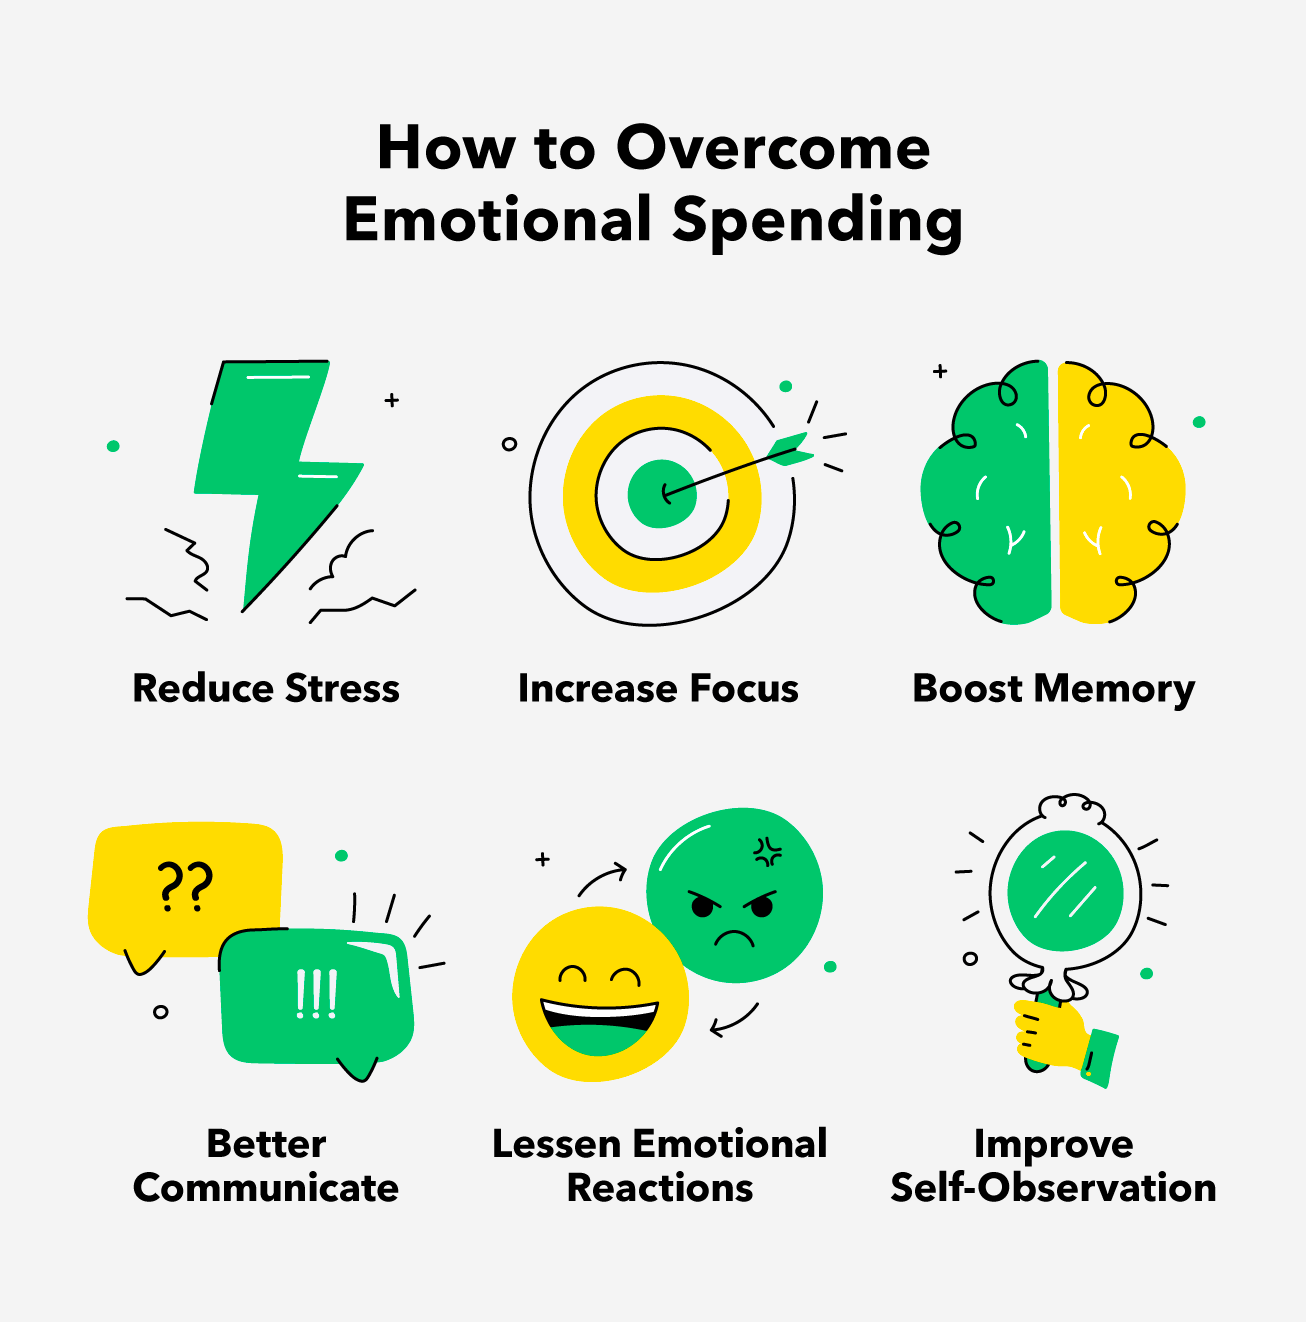 6 Ways to Control Emotional Spending